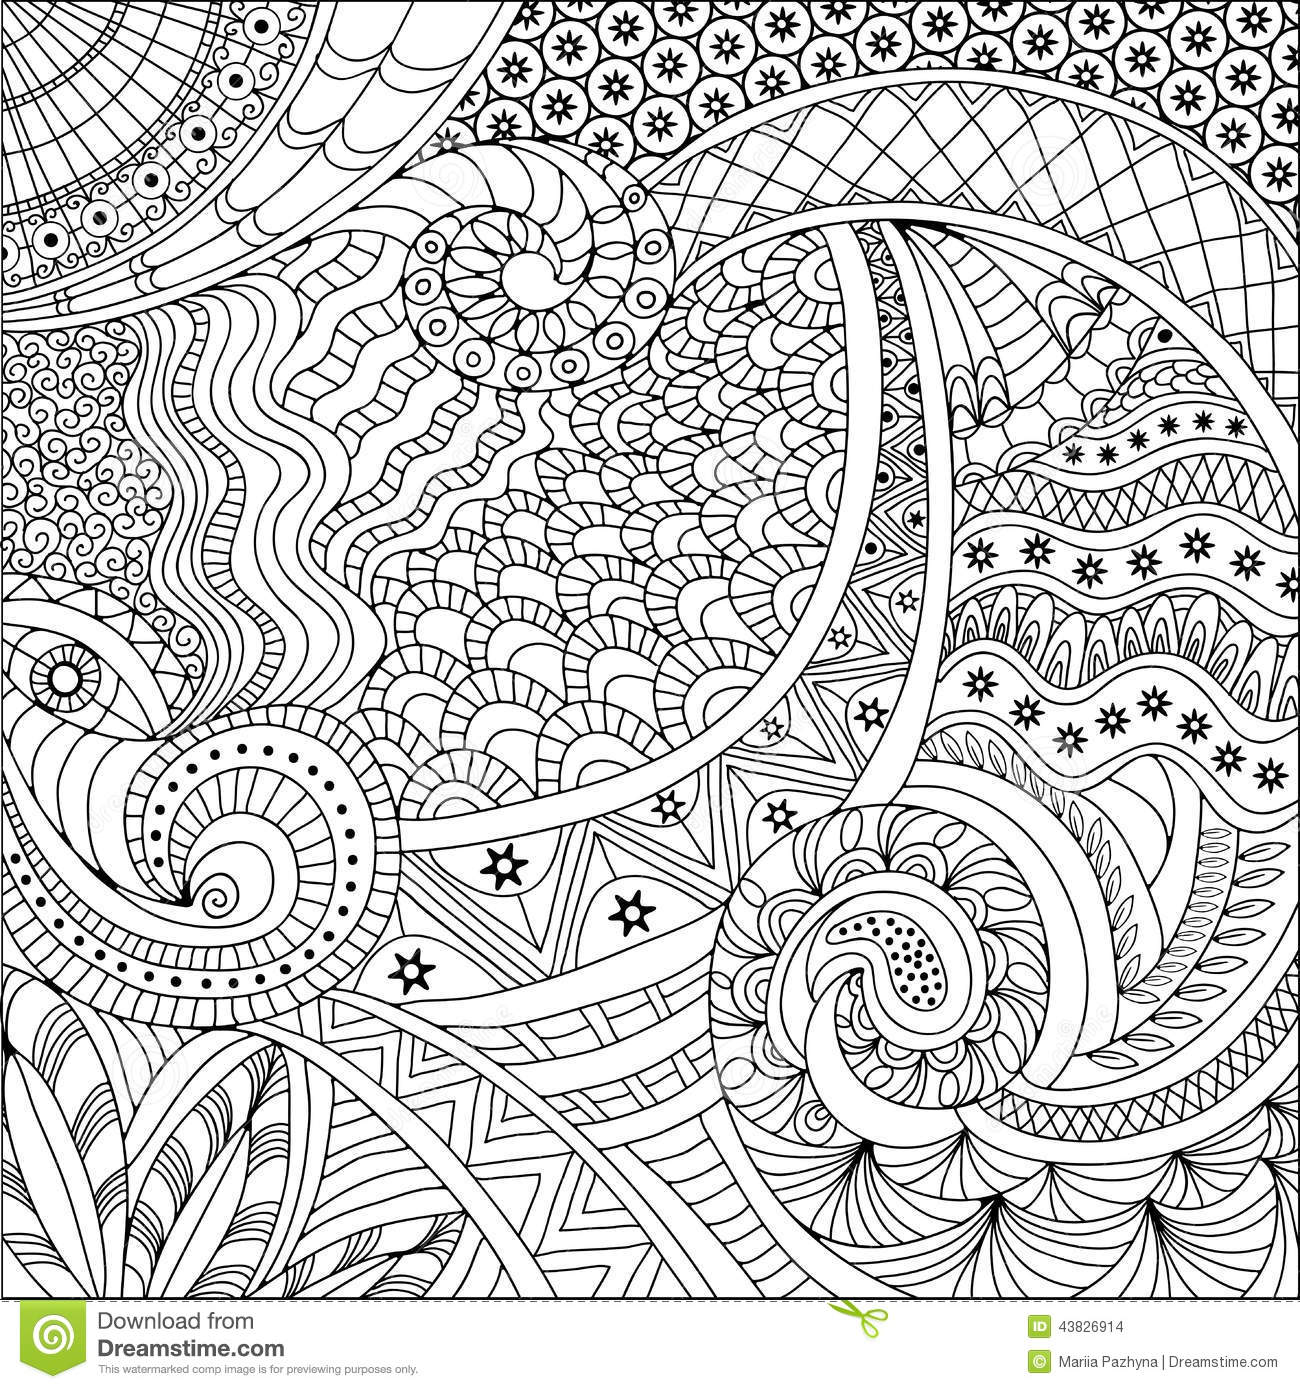 ethnic coloring pages | Ethnic Background Pattern Stock Vector - Image: 43826914